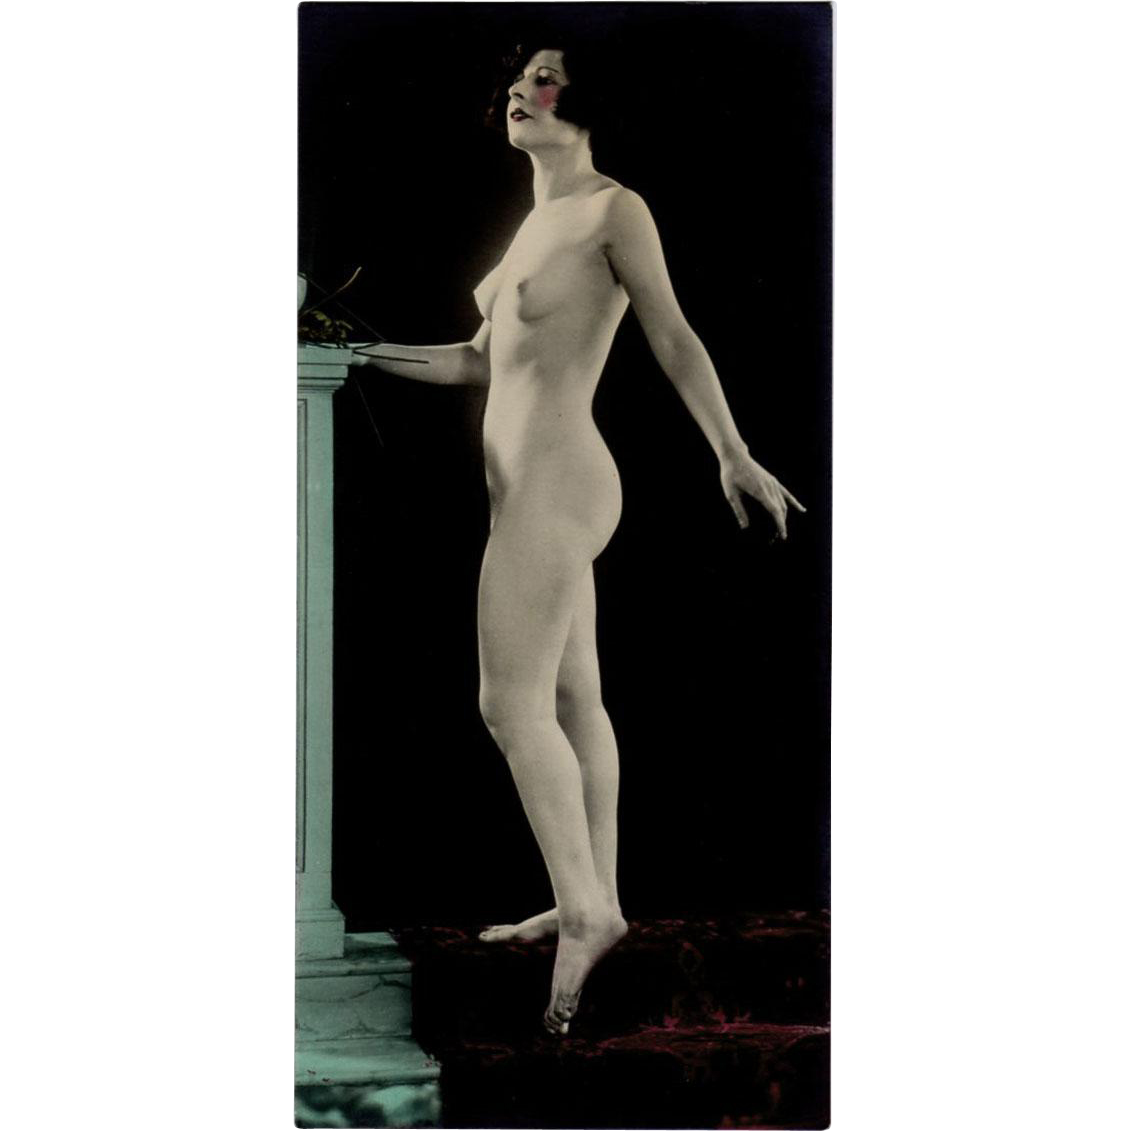 Hand Tinted Vintage Photograph - circa 1920's - Posed Nude Woman